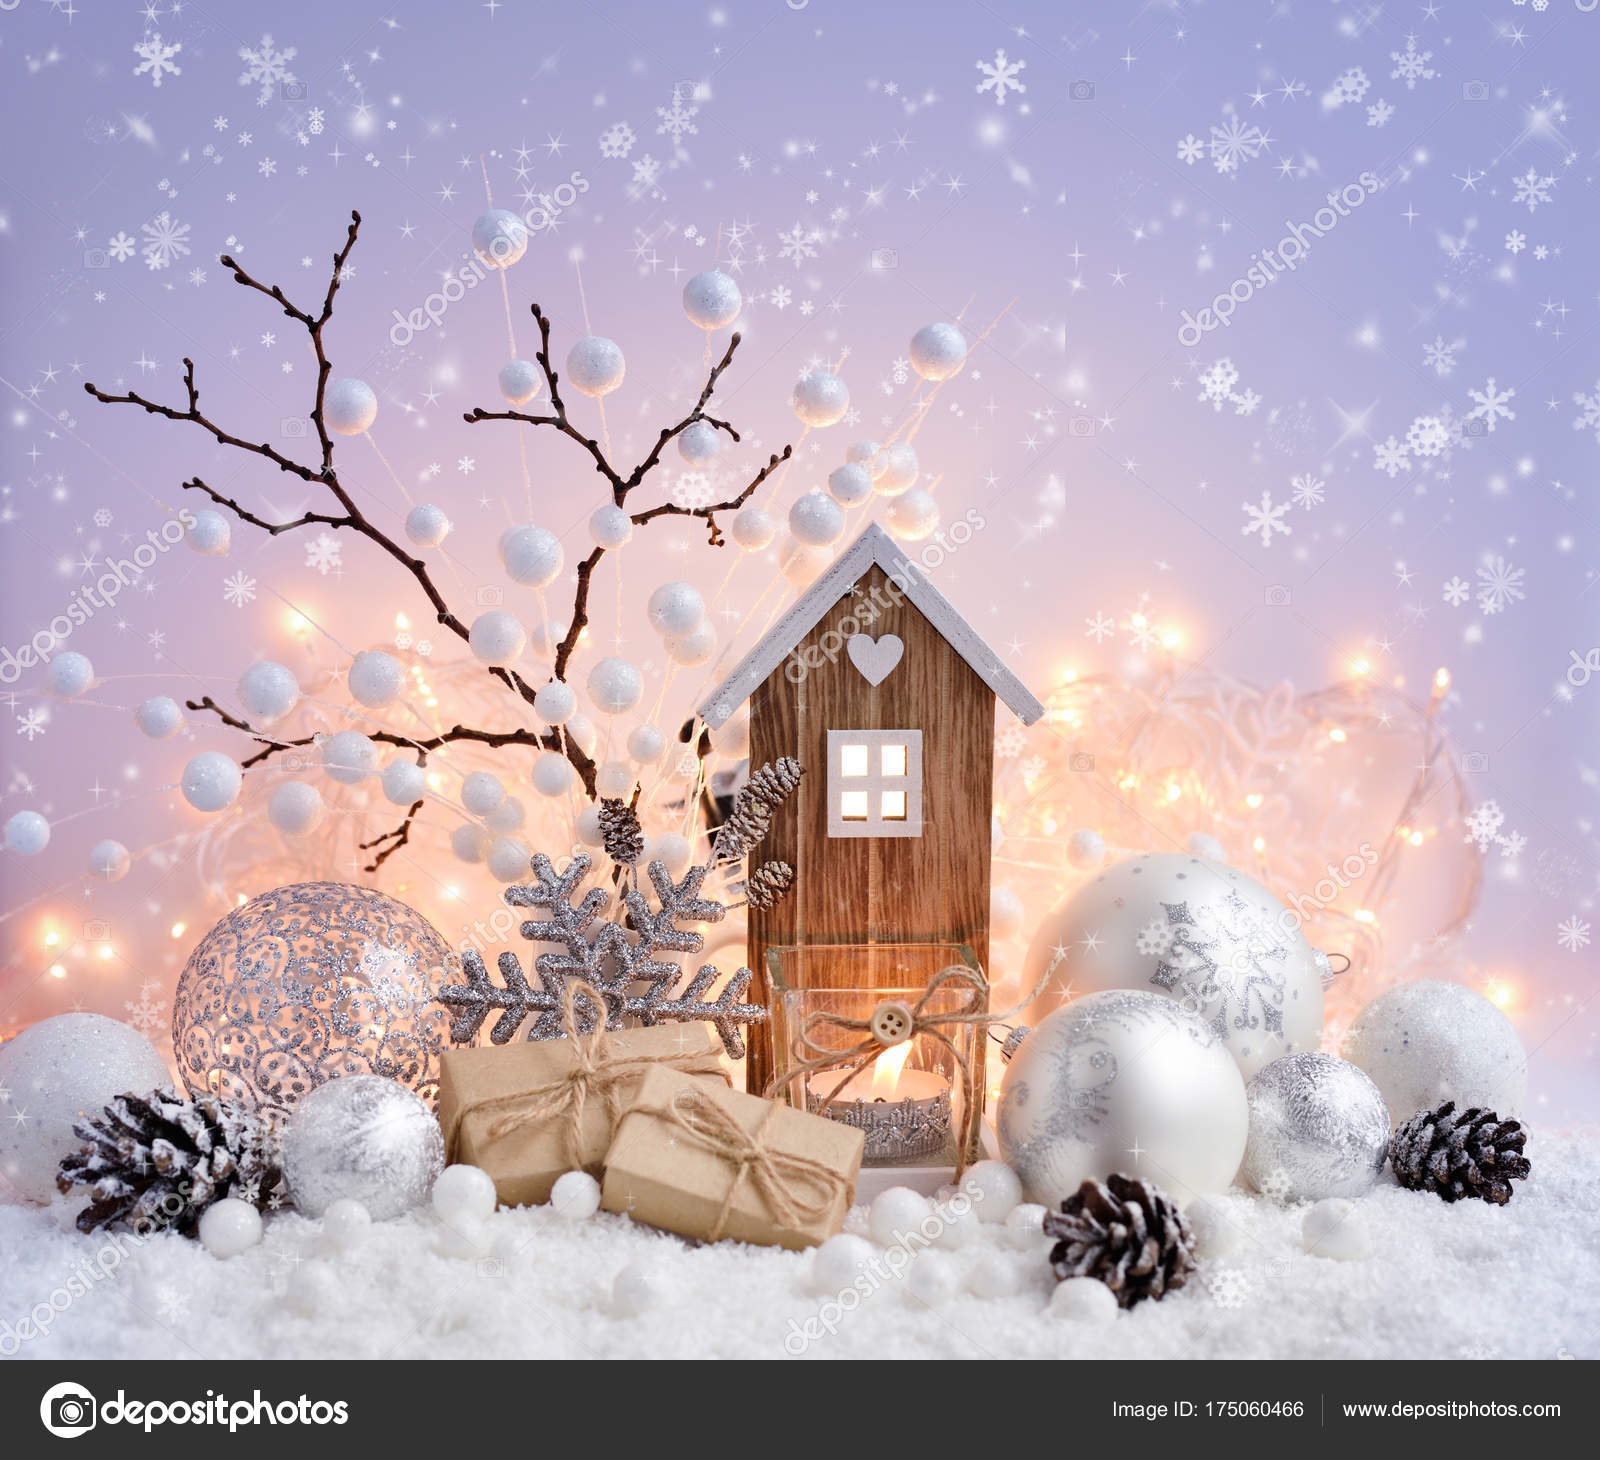 Schne deko good schne deko with schne deko interesting - Winterlandschaft dekoration ...